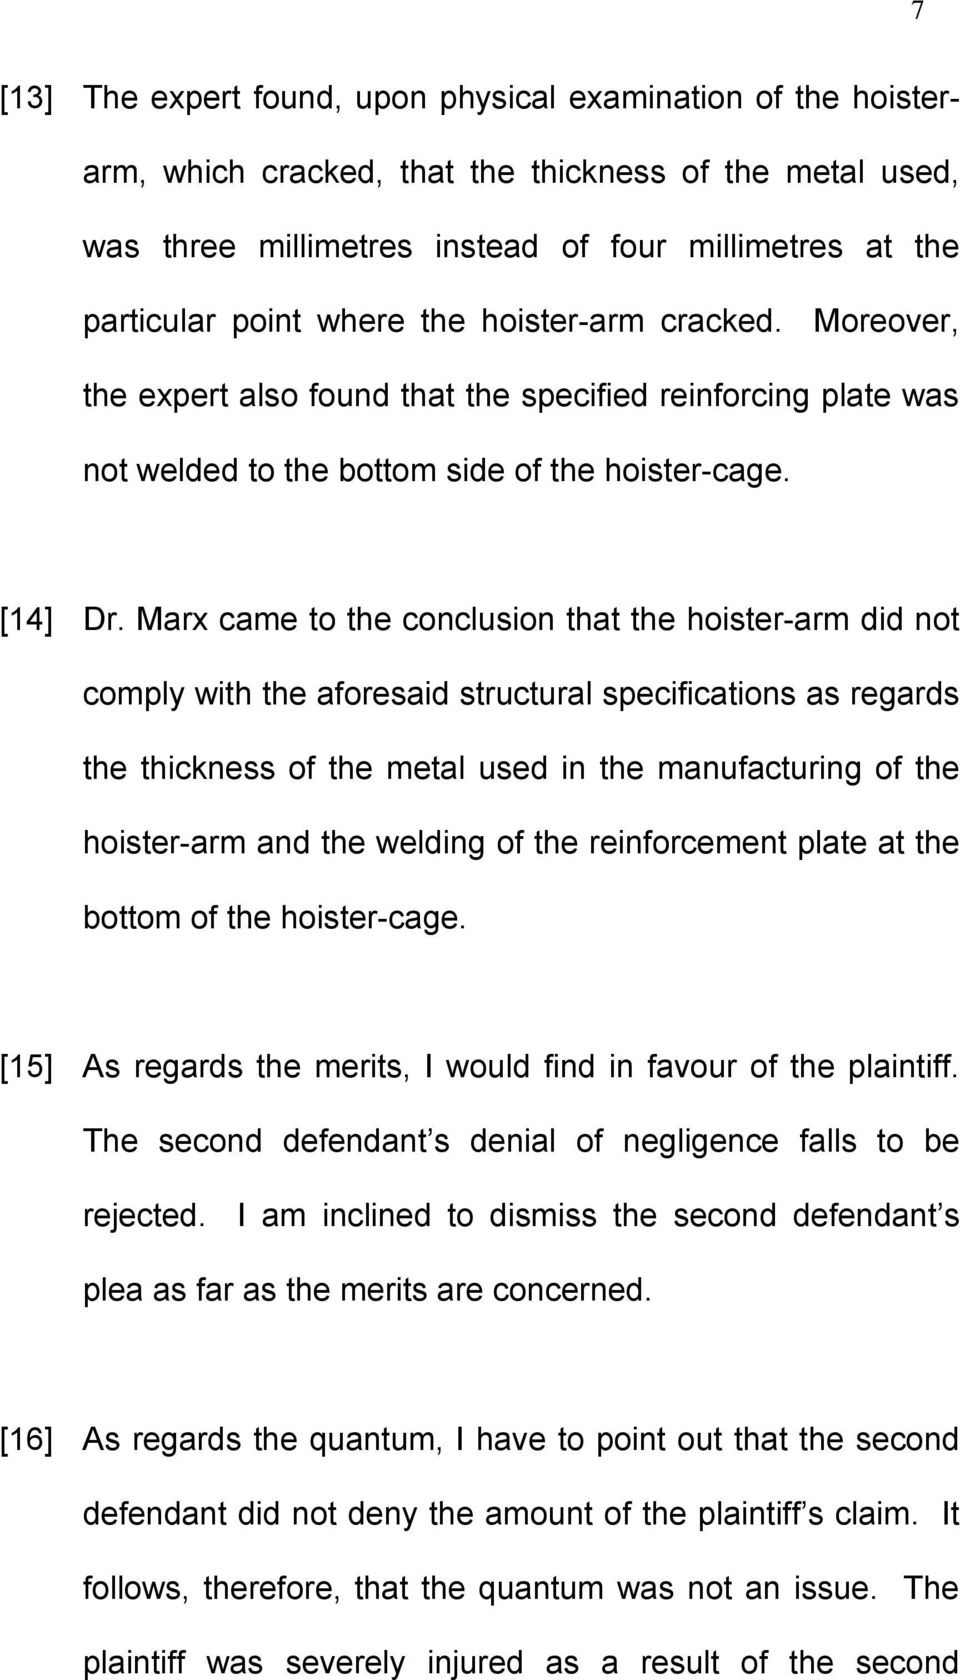 Marx came to the conclusion that the hoister-arm did not comply with the aforesaid structural specifications as regards the thickness of the metal used in the manufacturing of the hoister-arm and the